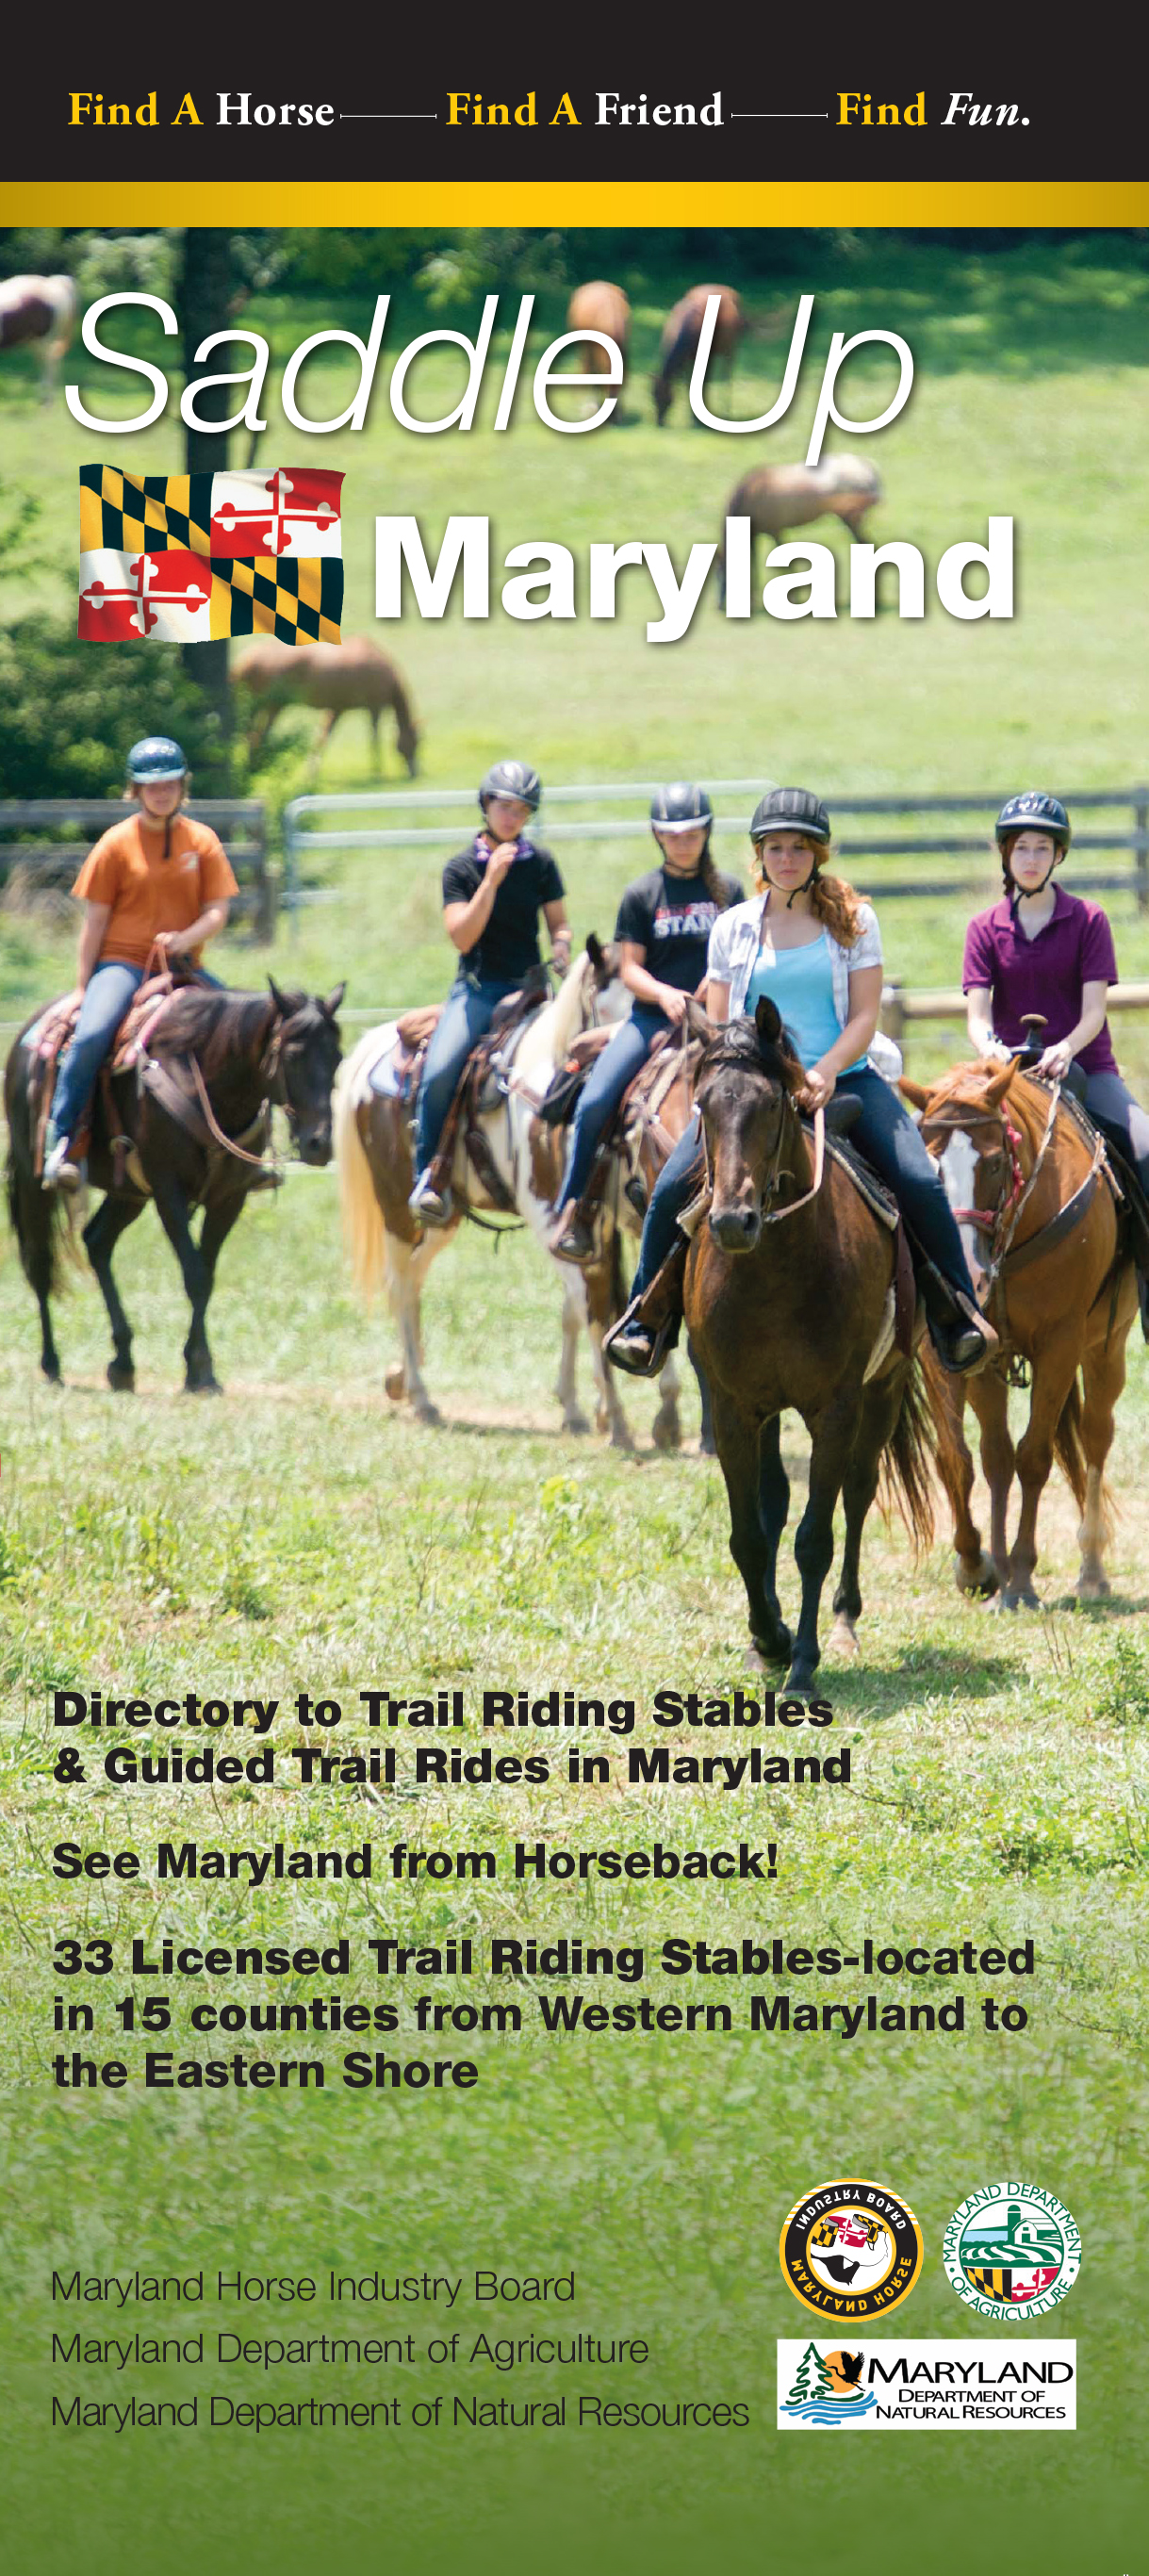 Saddle Up Maryland